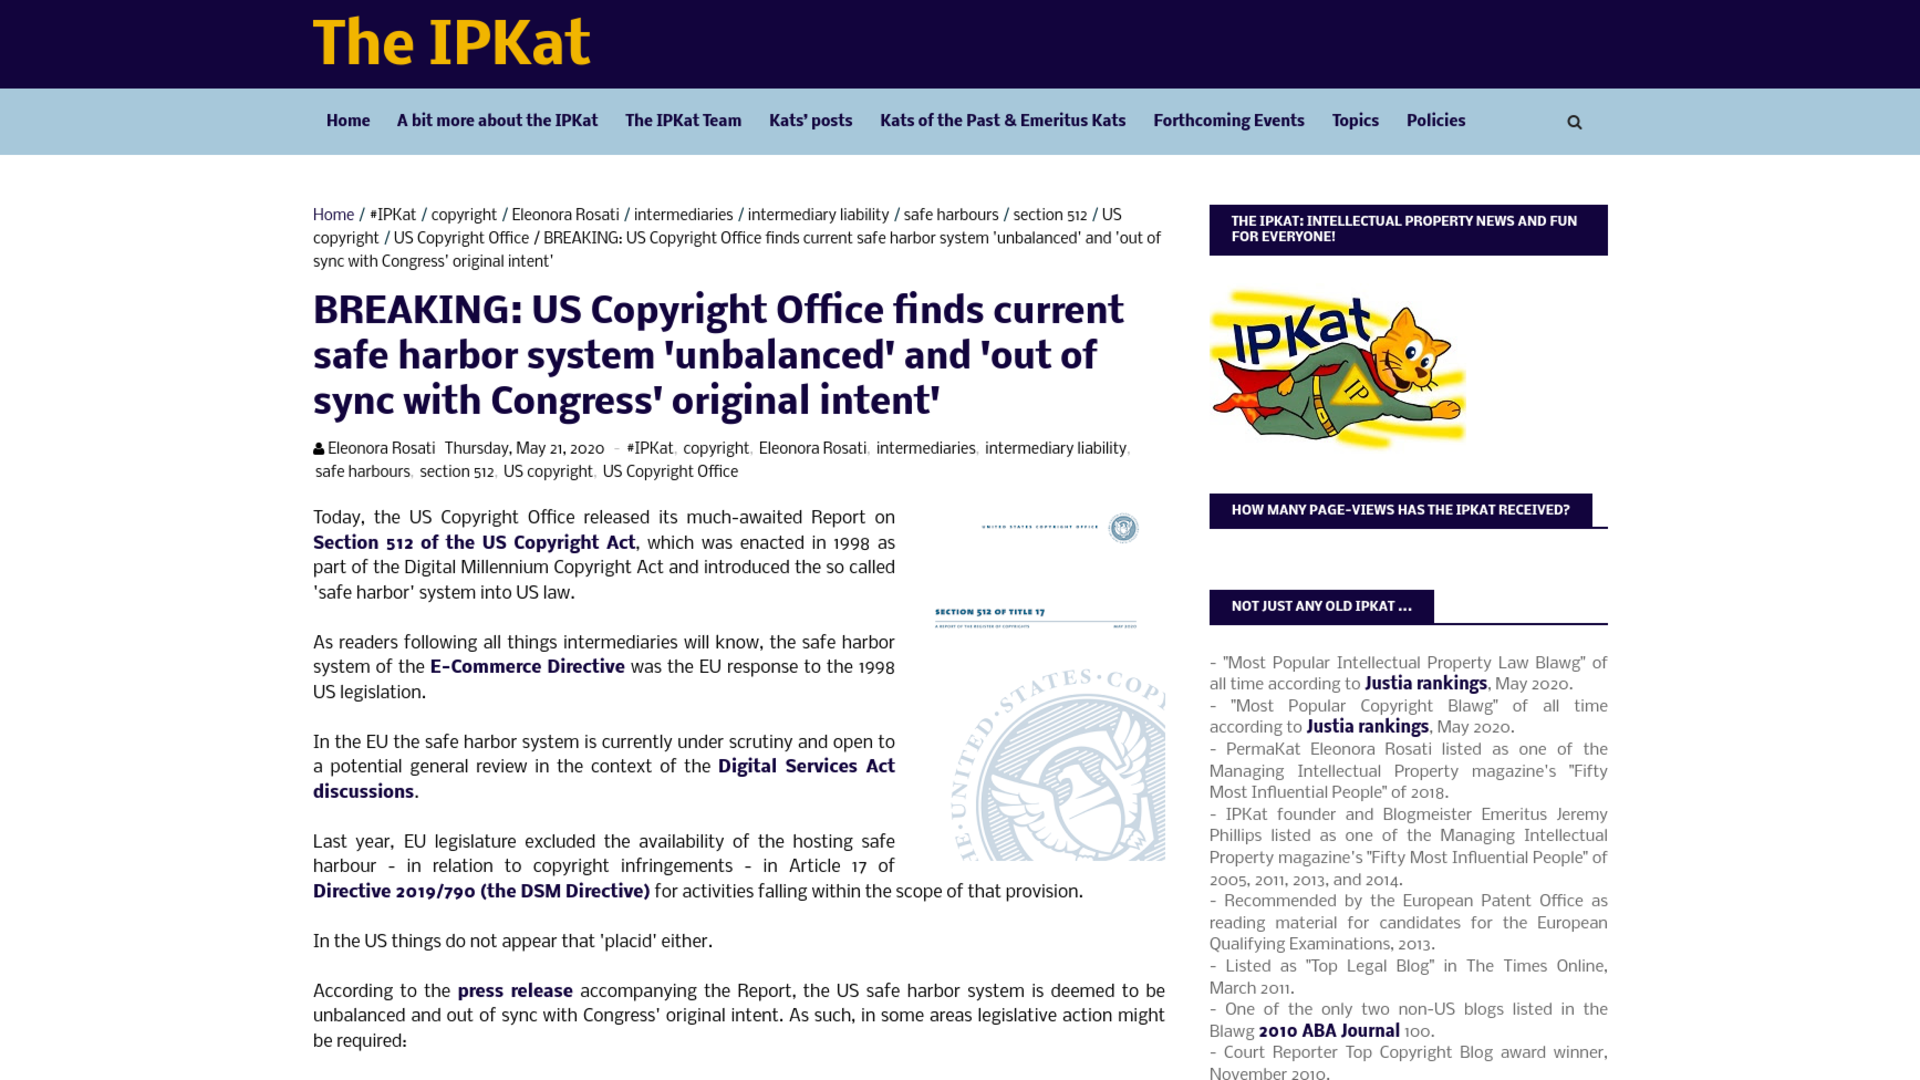 Fairness Rocks News BREAKING: US Copyright Office finds current safe harbor system 'unbalanced' and 'out of sync with Congress' original intent'